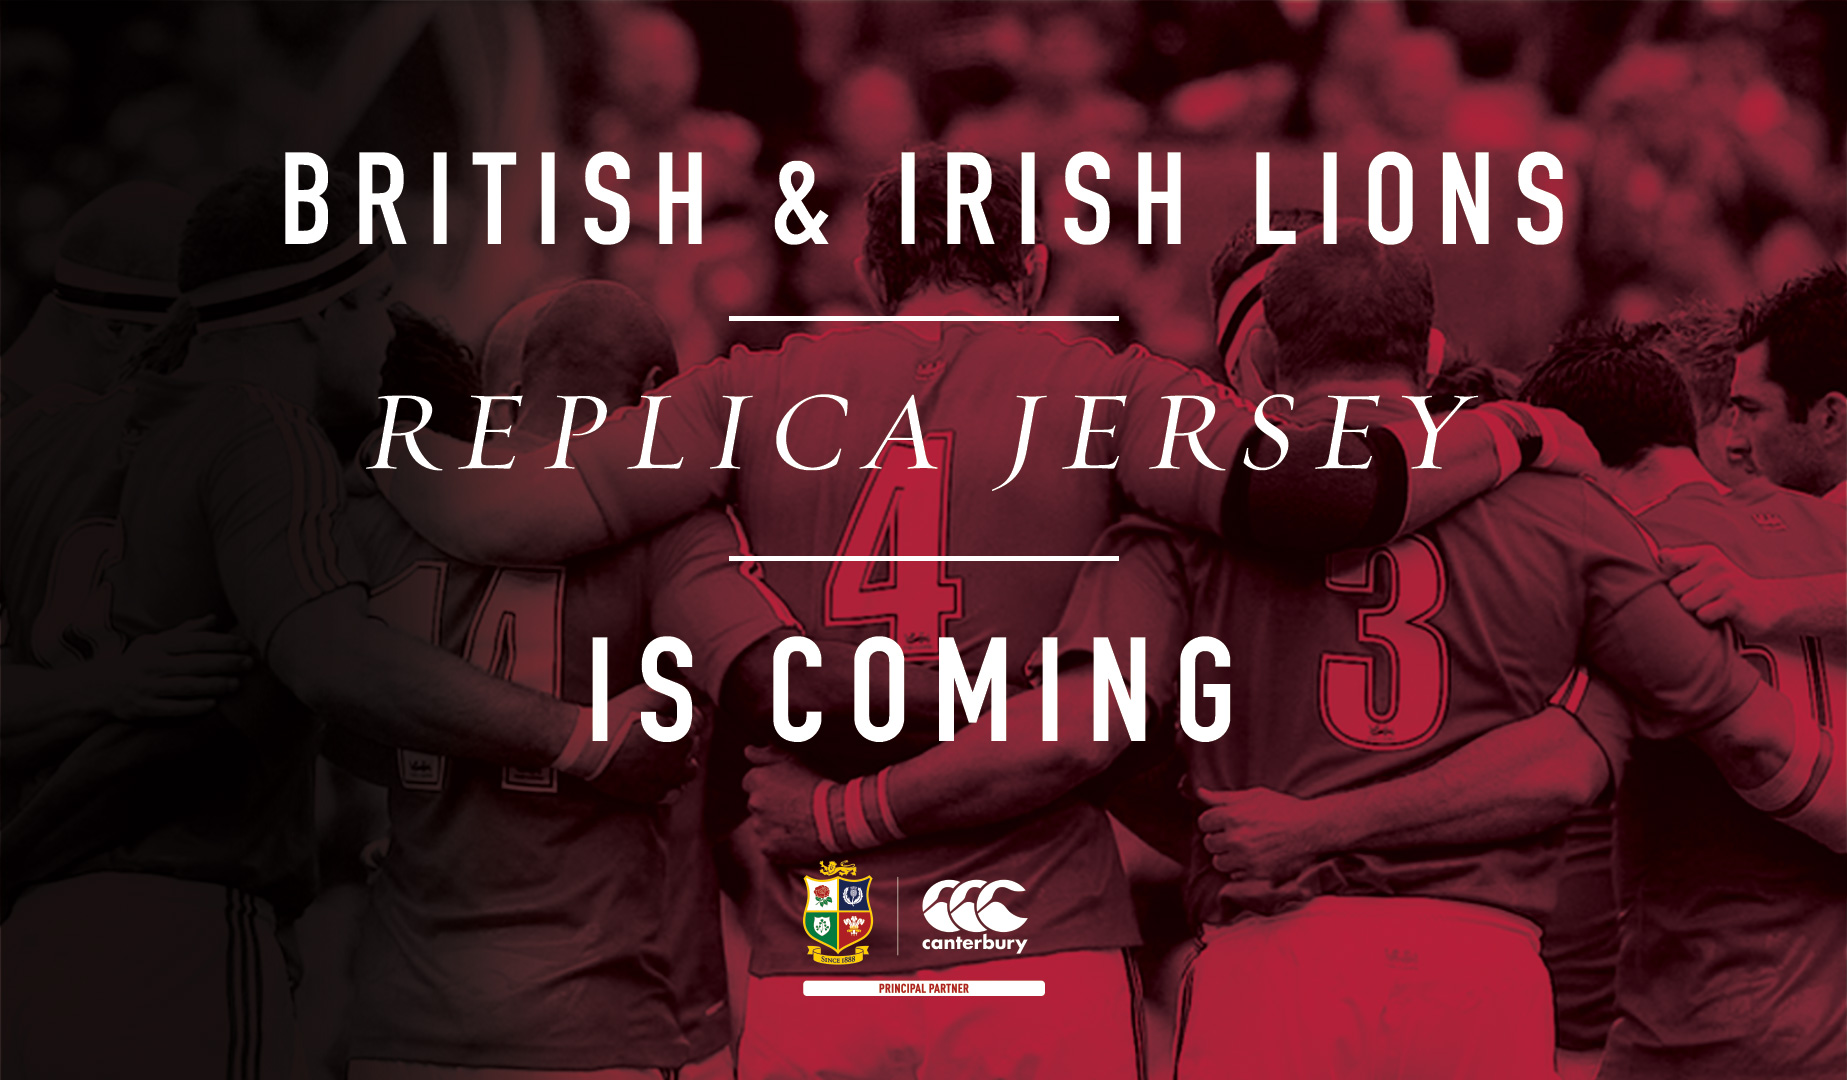 Iconic Lions Jersey is made available to pre-order